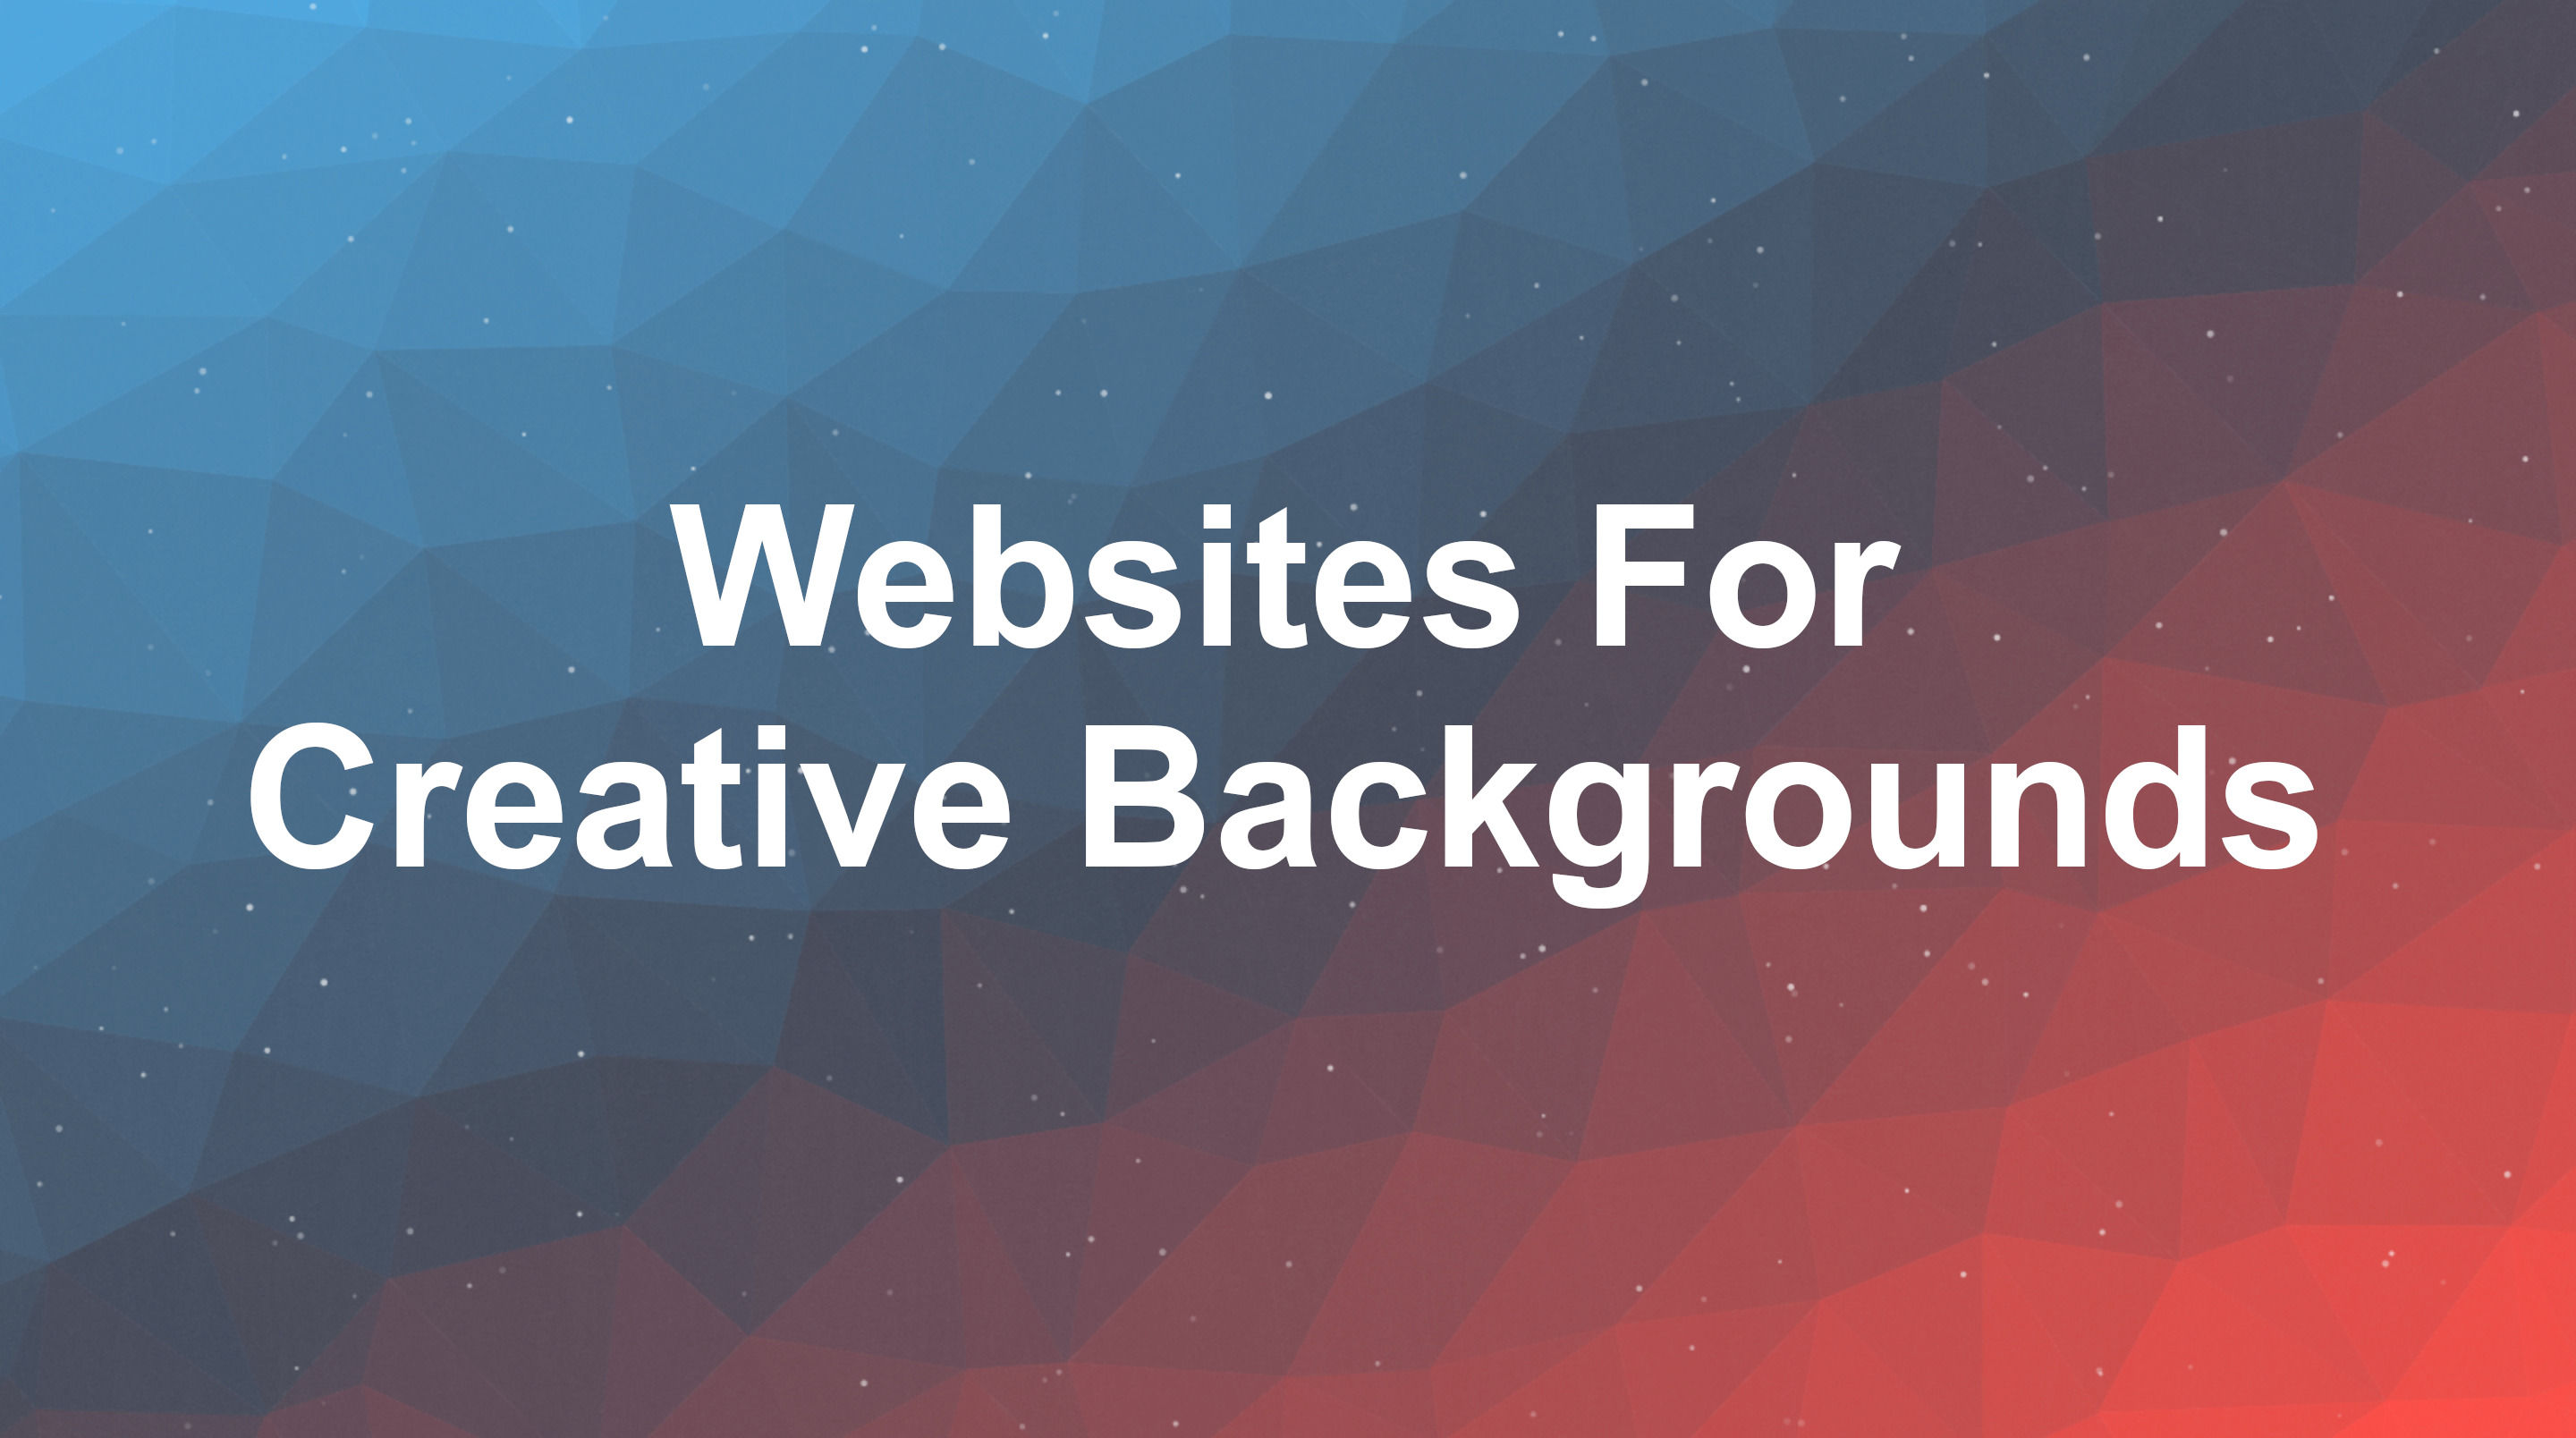 Websites For Creative Backgrounds